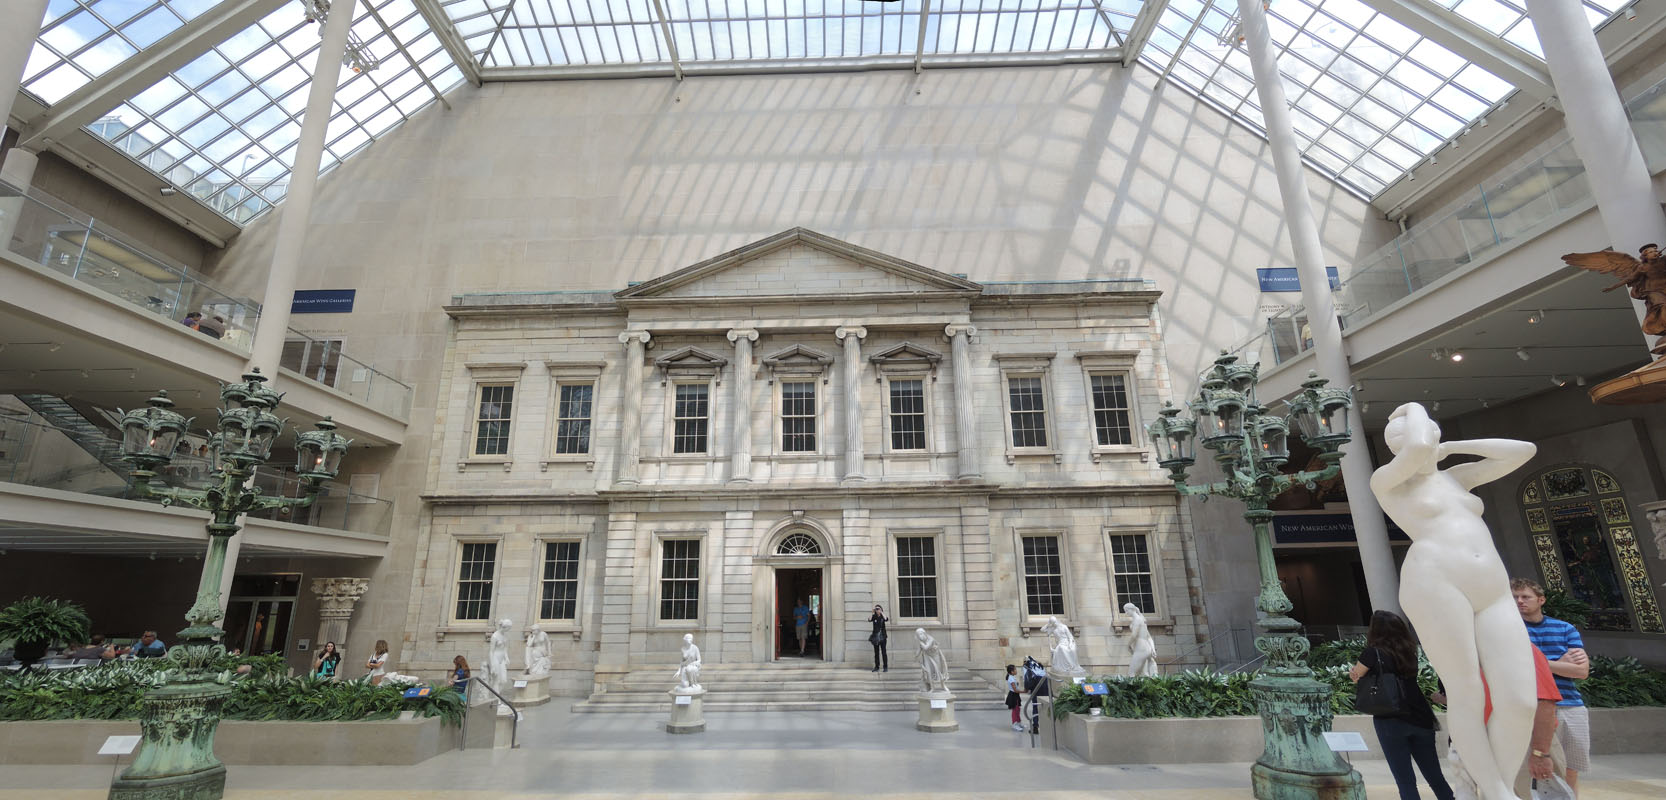 essay about metropolitan museum of art location